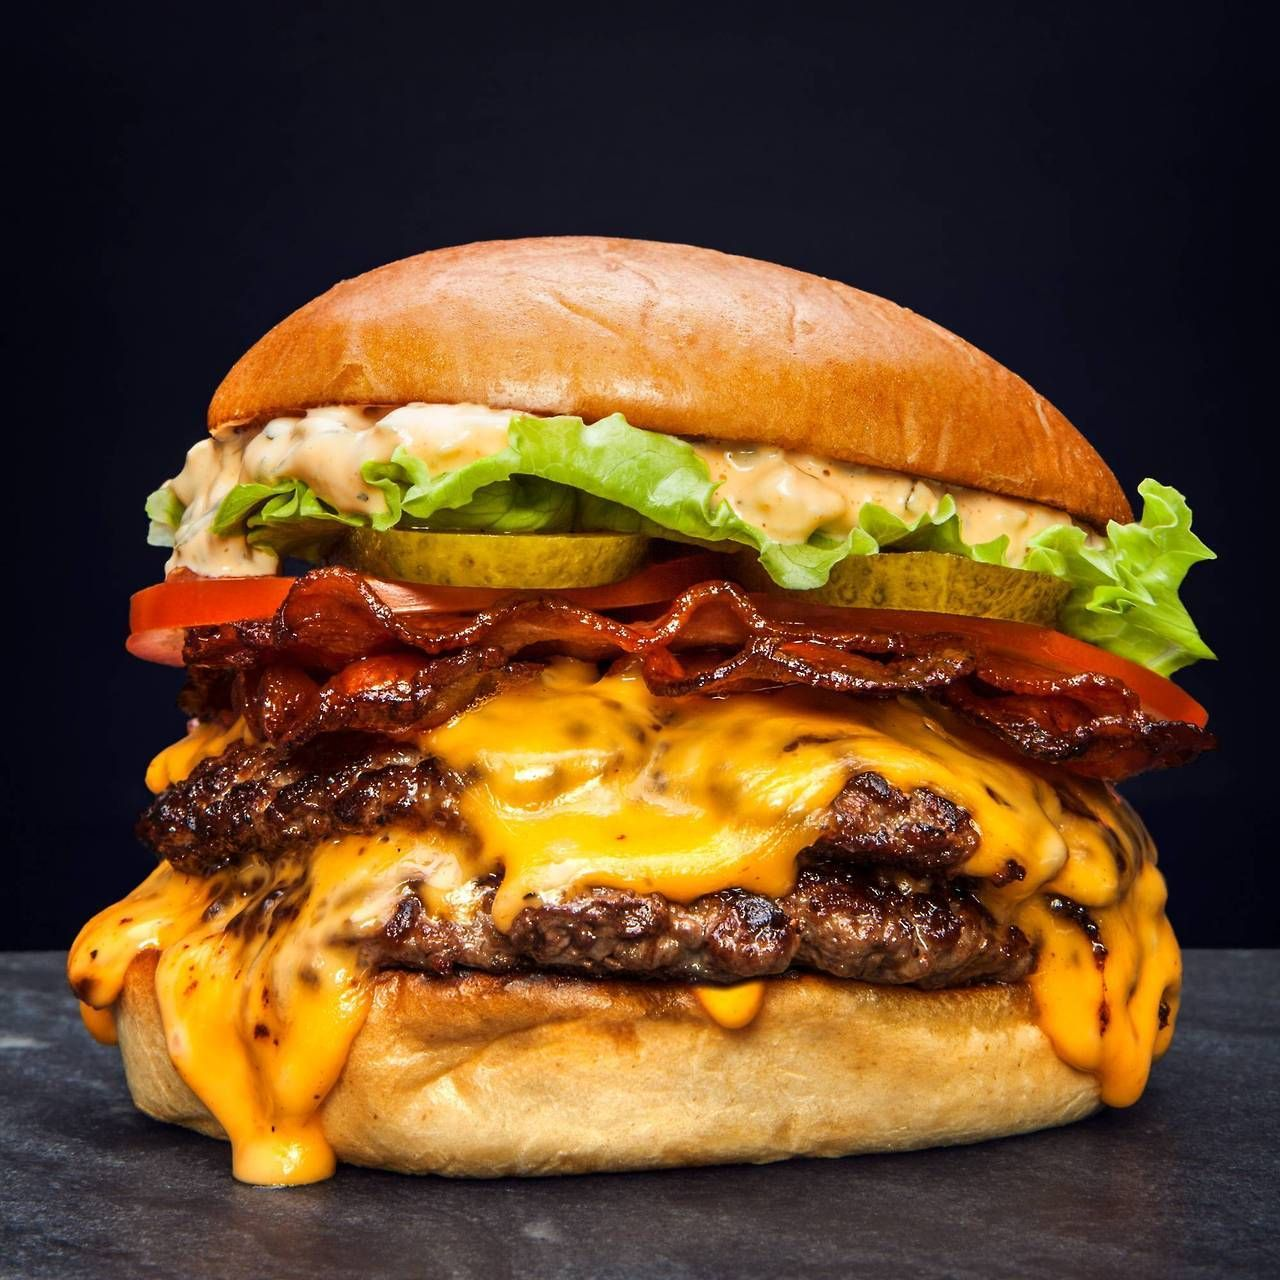 Post anything from anywhere. Bacon clipart bacon cheeseburger image freeuse stock